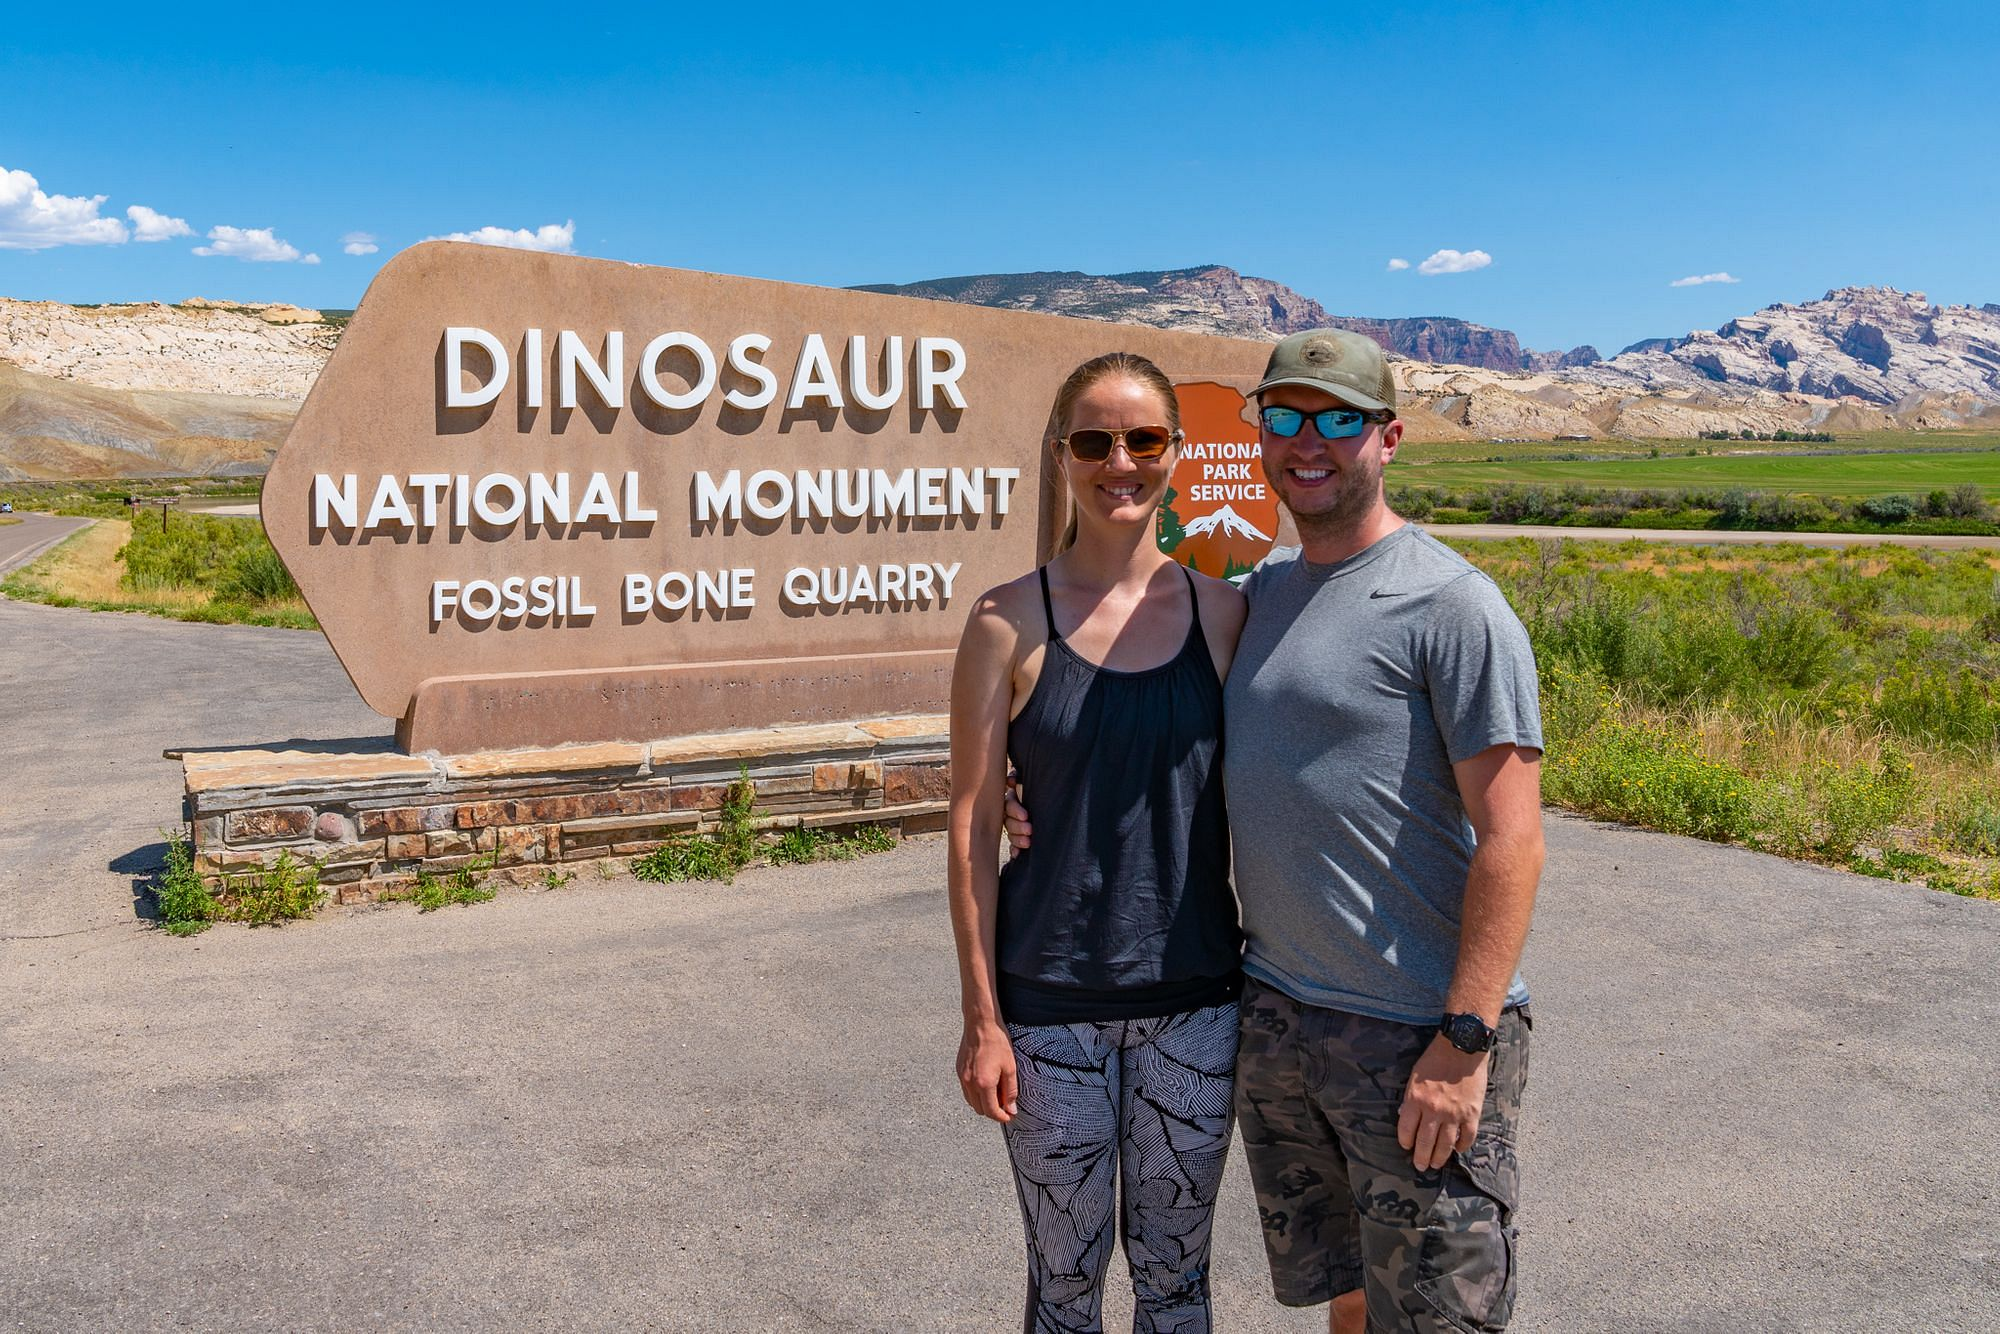 Dinosaur National Monument Entrance Sign